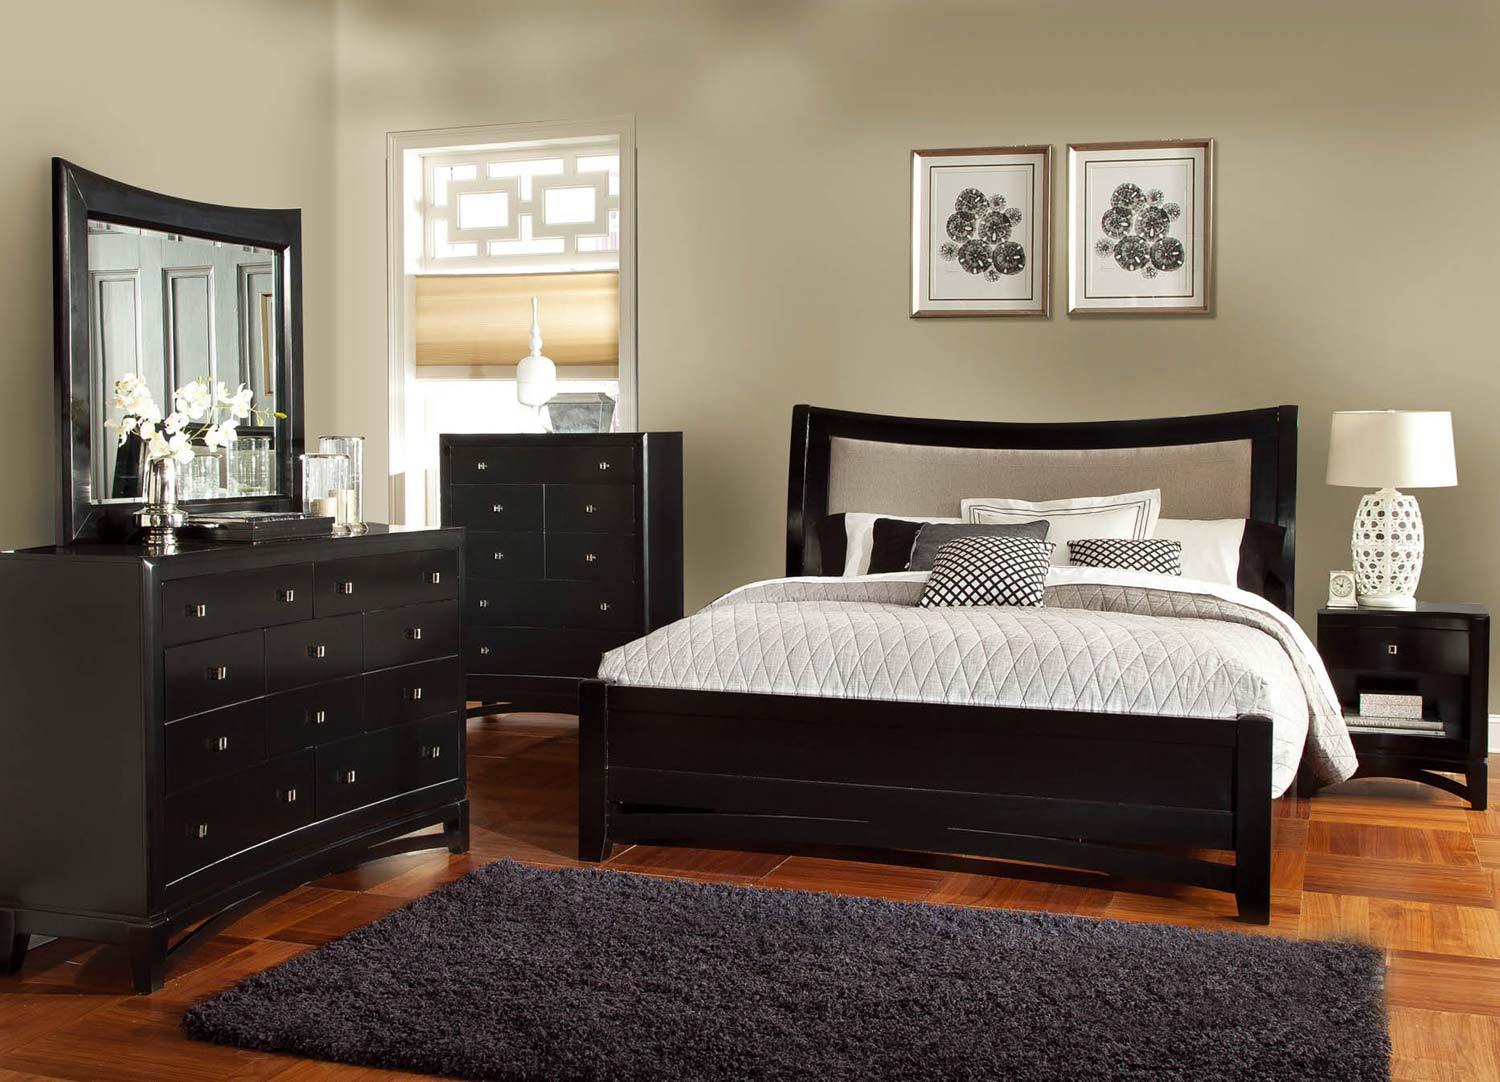 Global furniture usa madeline bedroom set black gf for Bedroom furniture usa